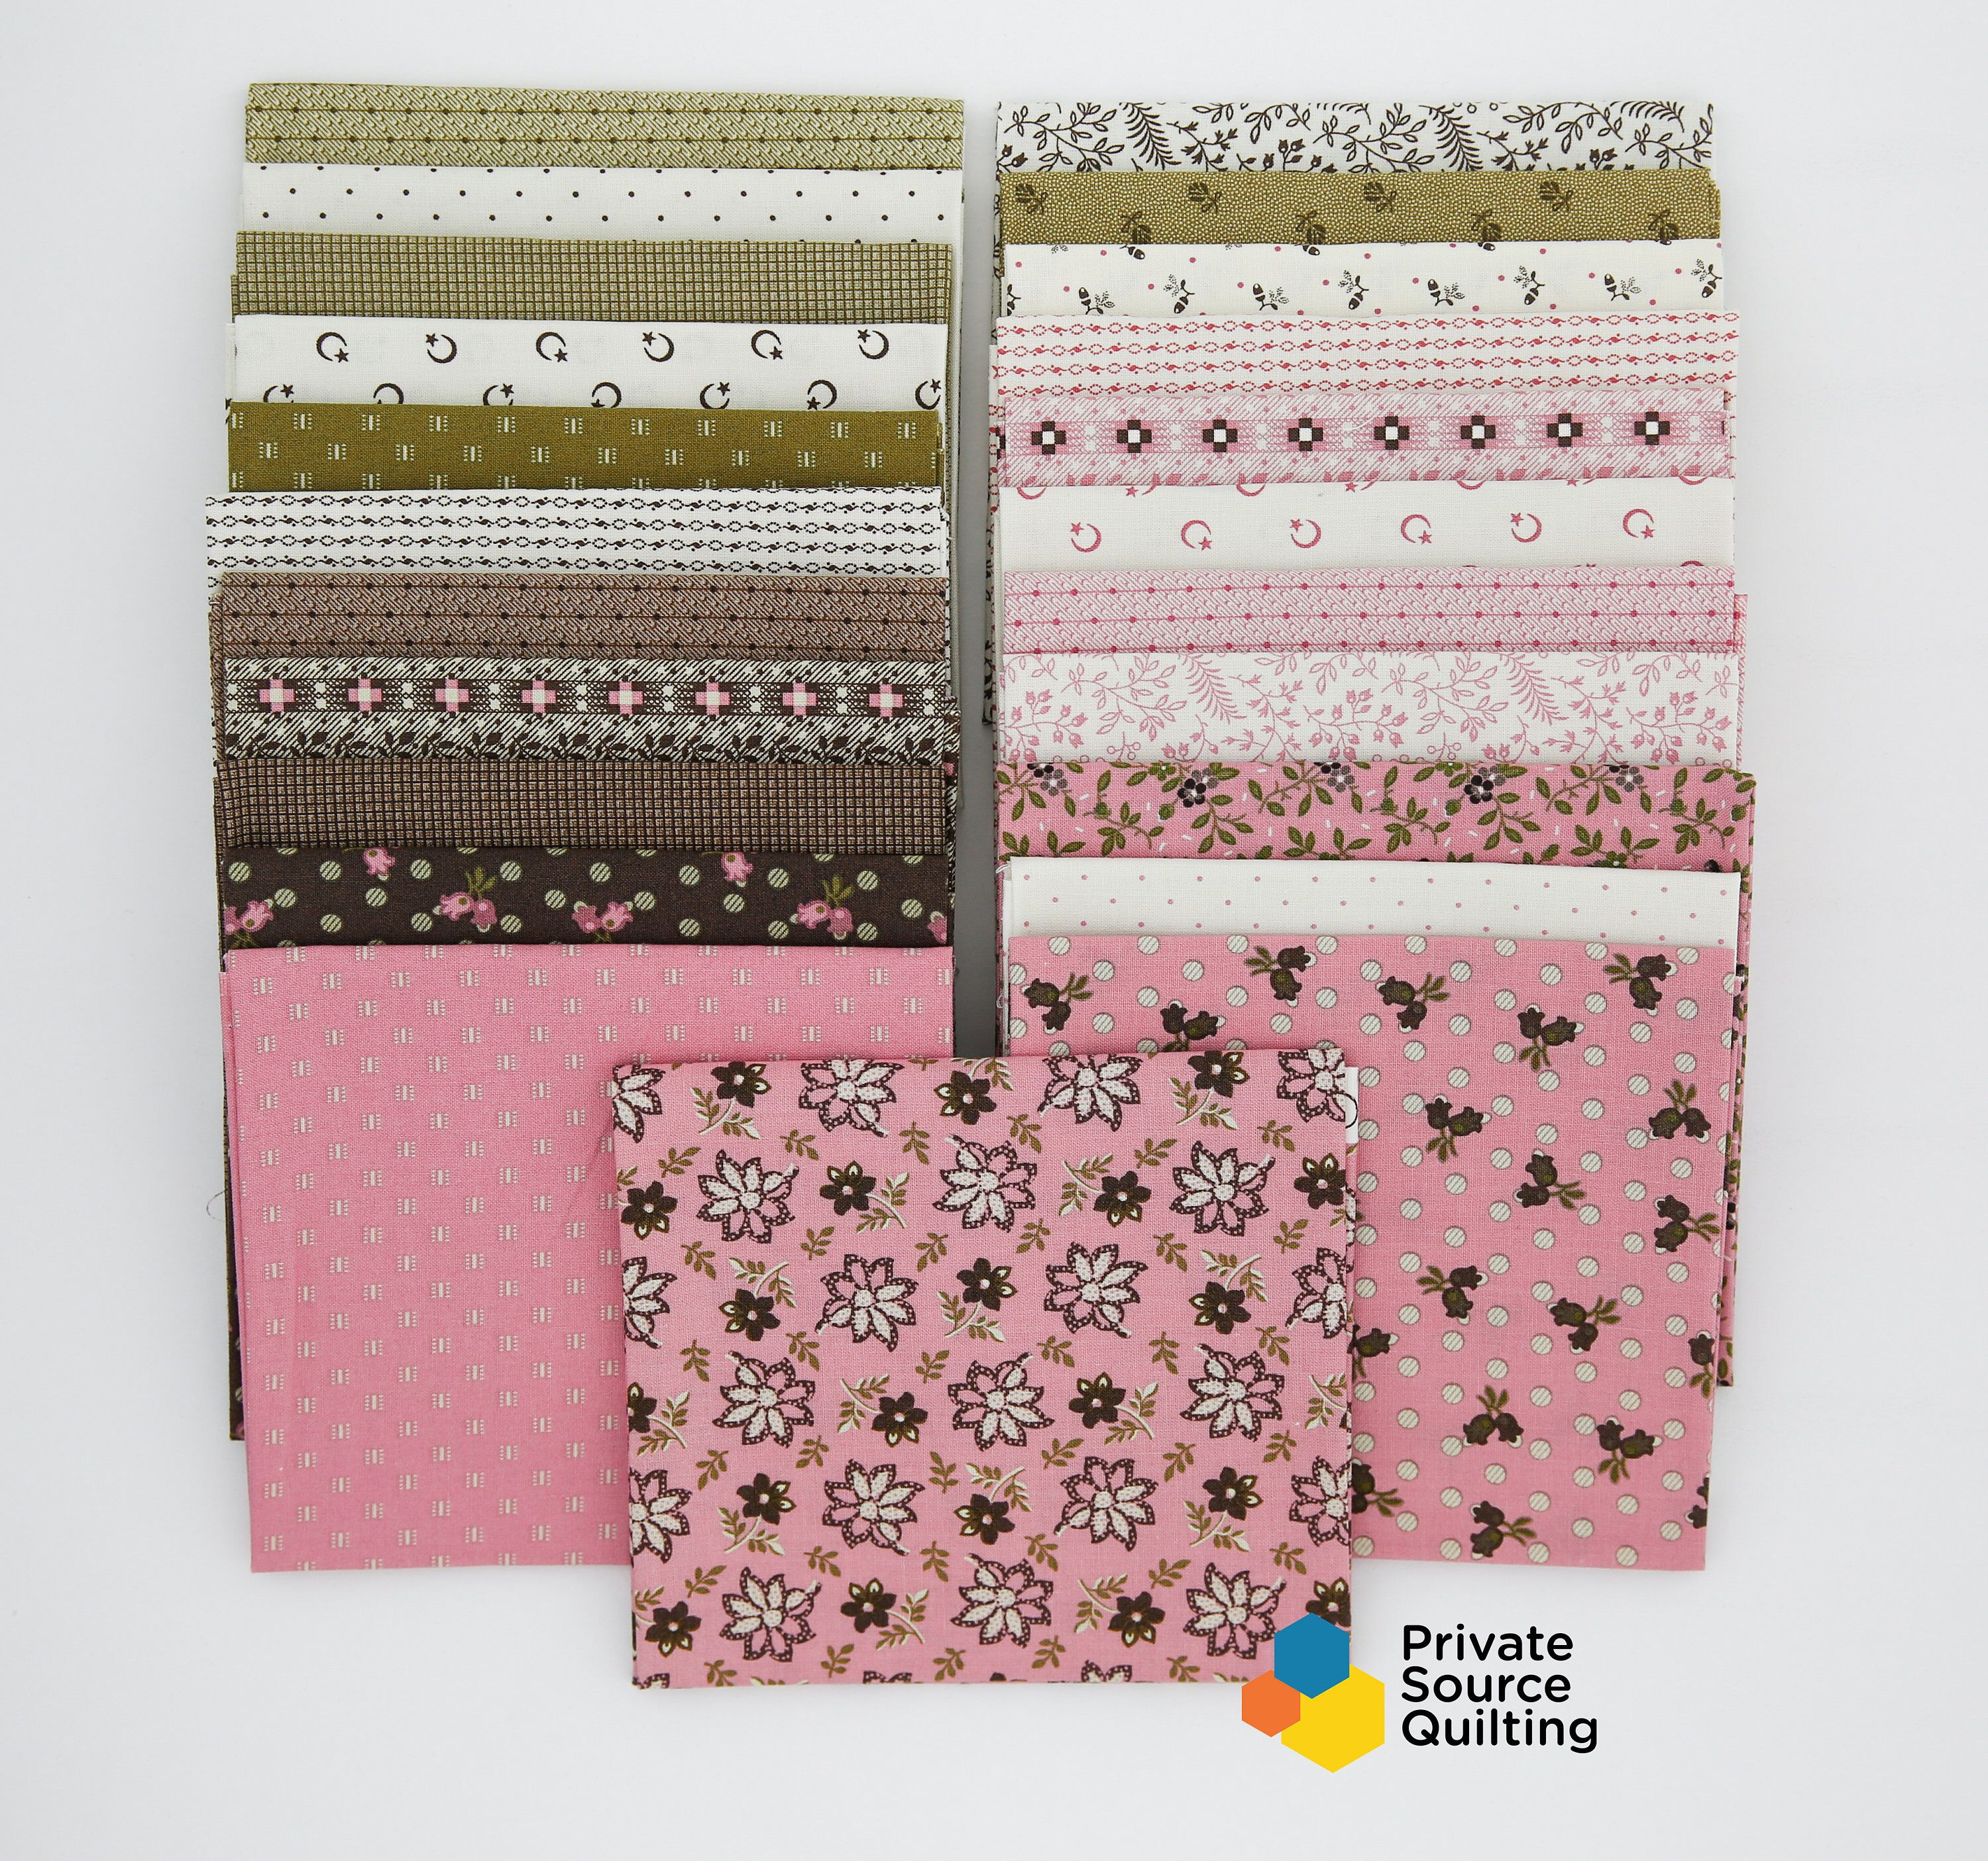 RJR Patrick Lose Odds and Ends Black and White 16 Fat Quarter Set Fabric